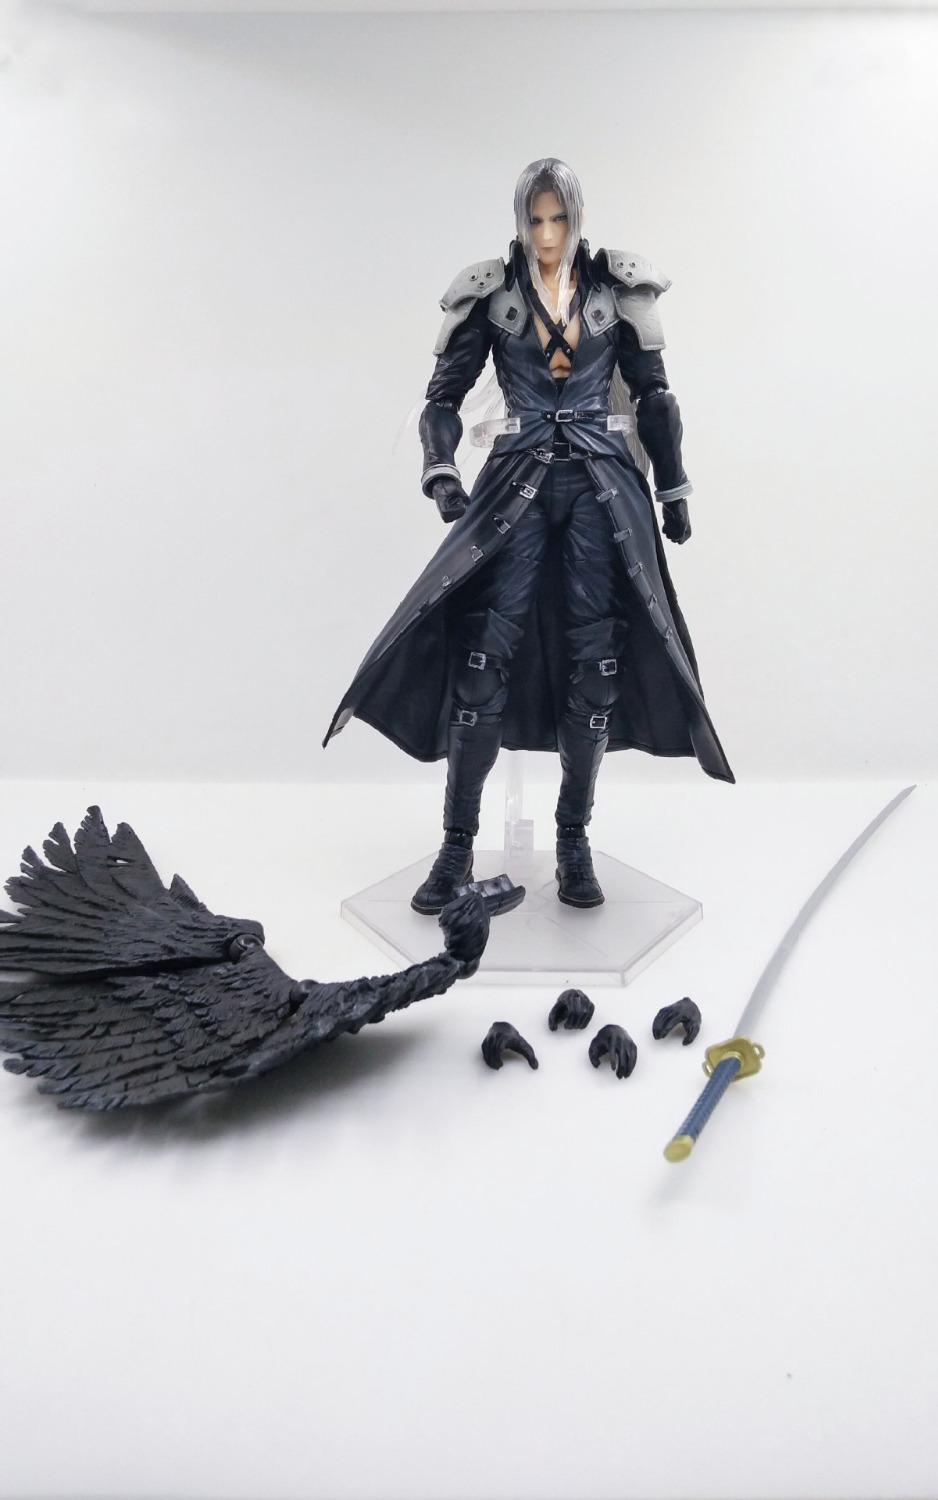 Anime Figure 25CM Final Fantasy VII 7 Sephiroth PVC Action Figure Collectible Model Toys Doll with box new hot 17cm avengers thor action figure toys collection christmas gift doll with box j h a c g